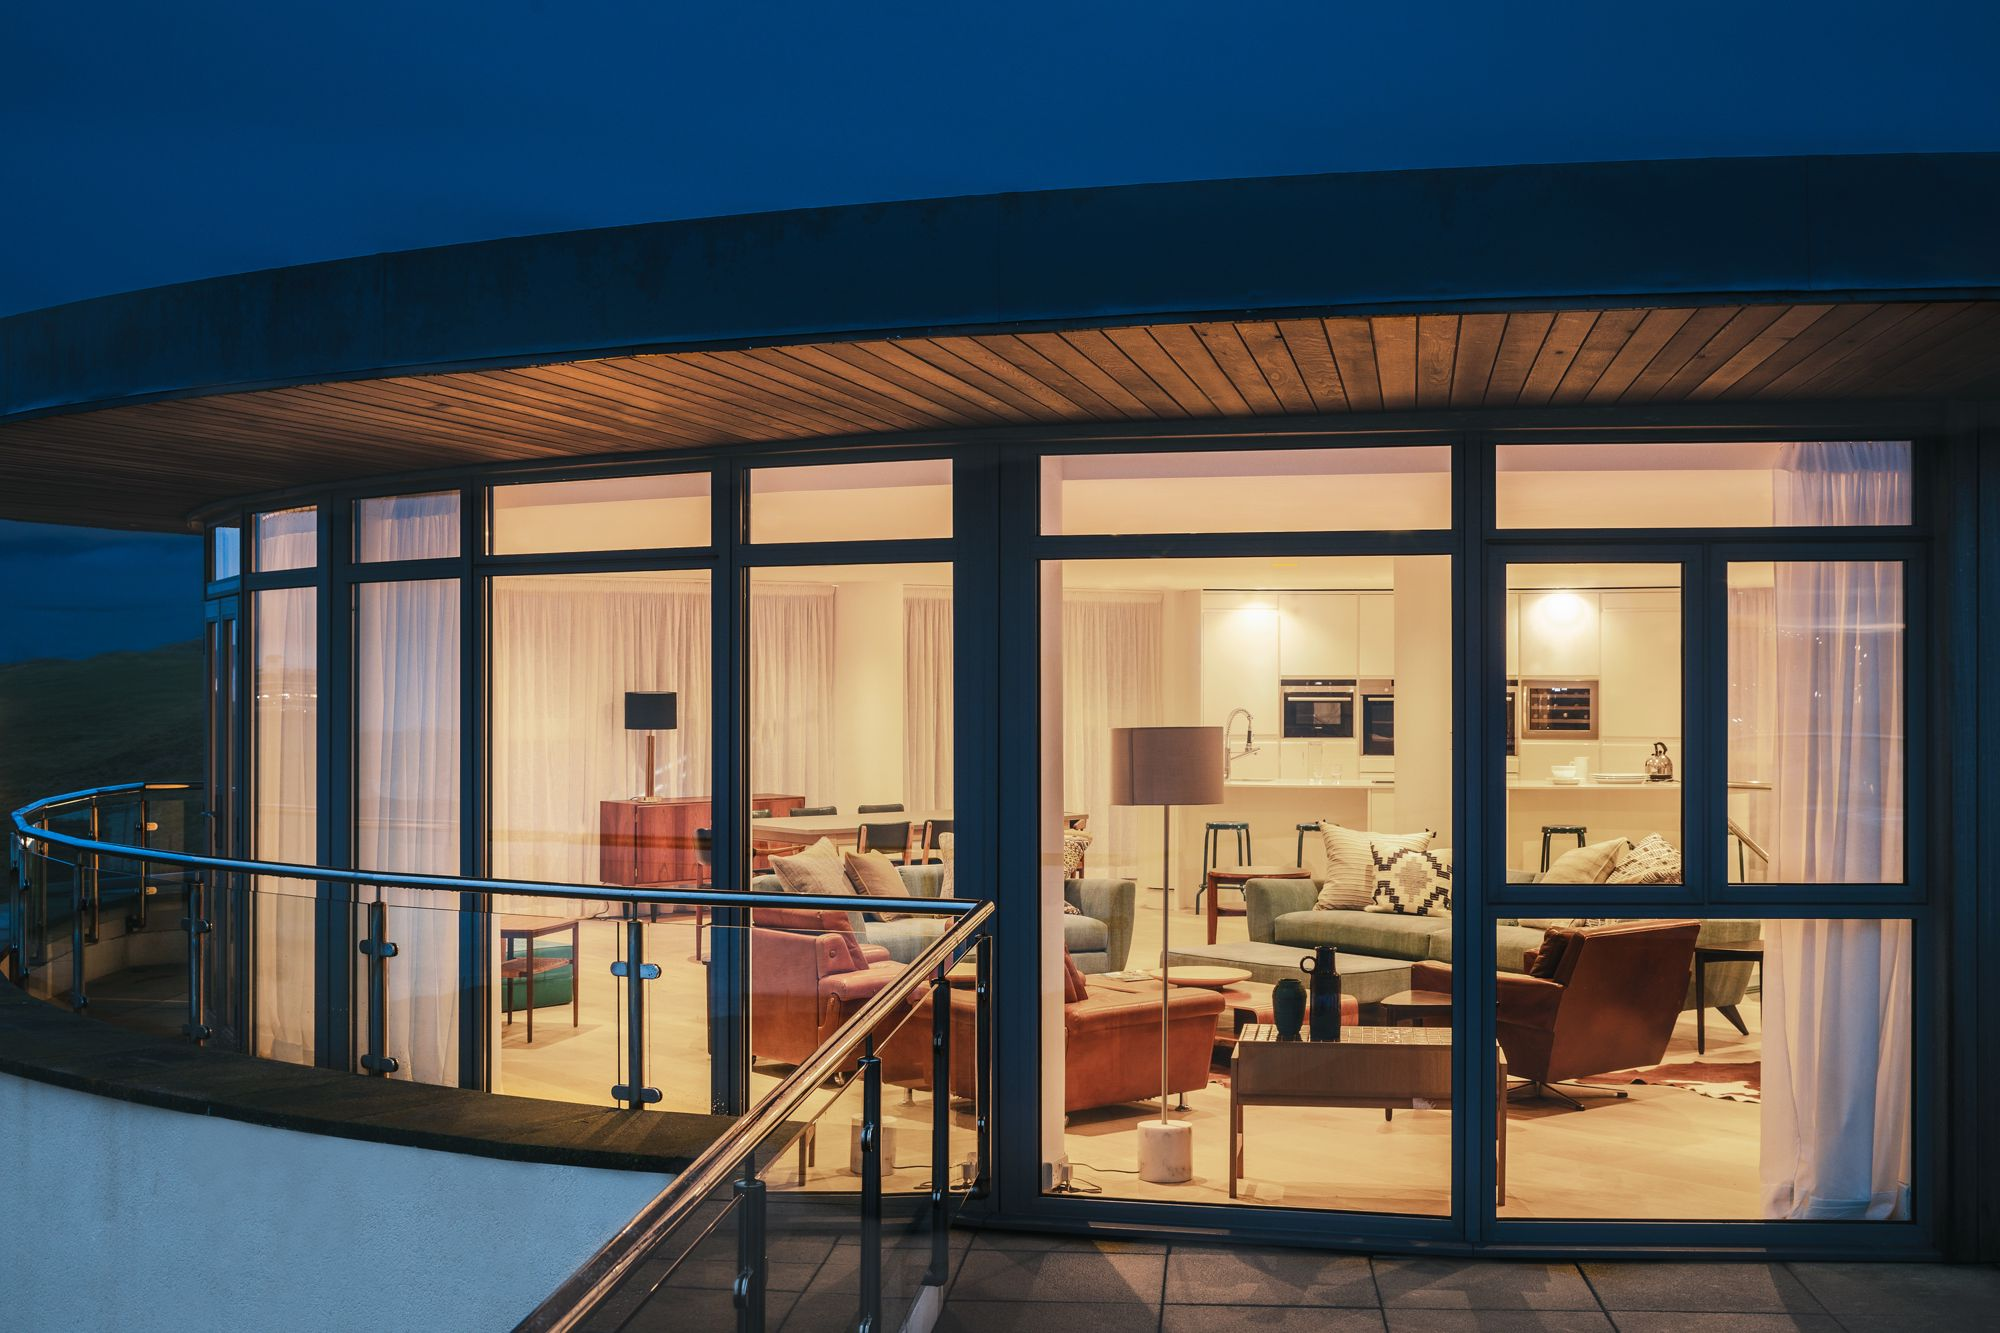 Self-Catering in Newquay holidays at Cool Places